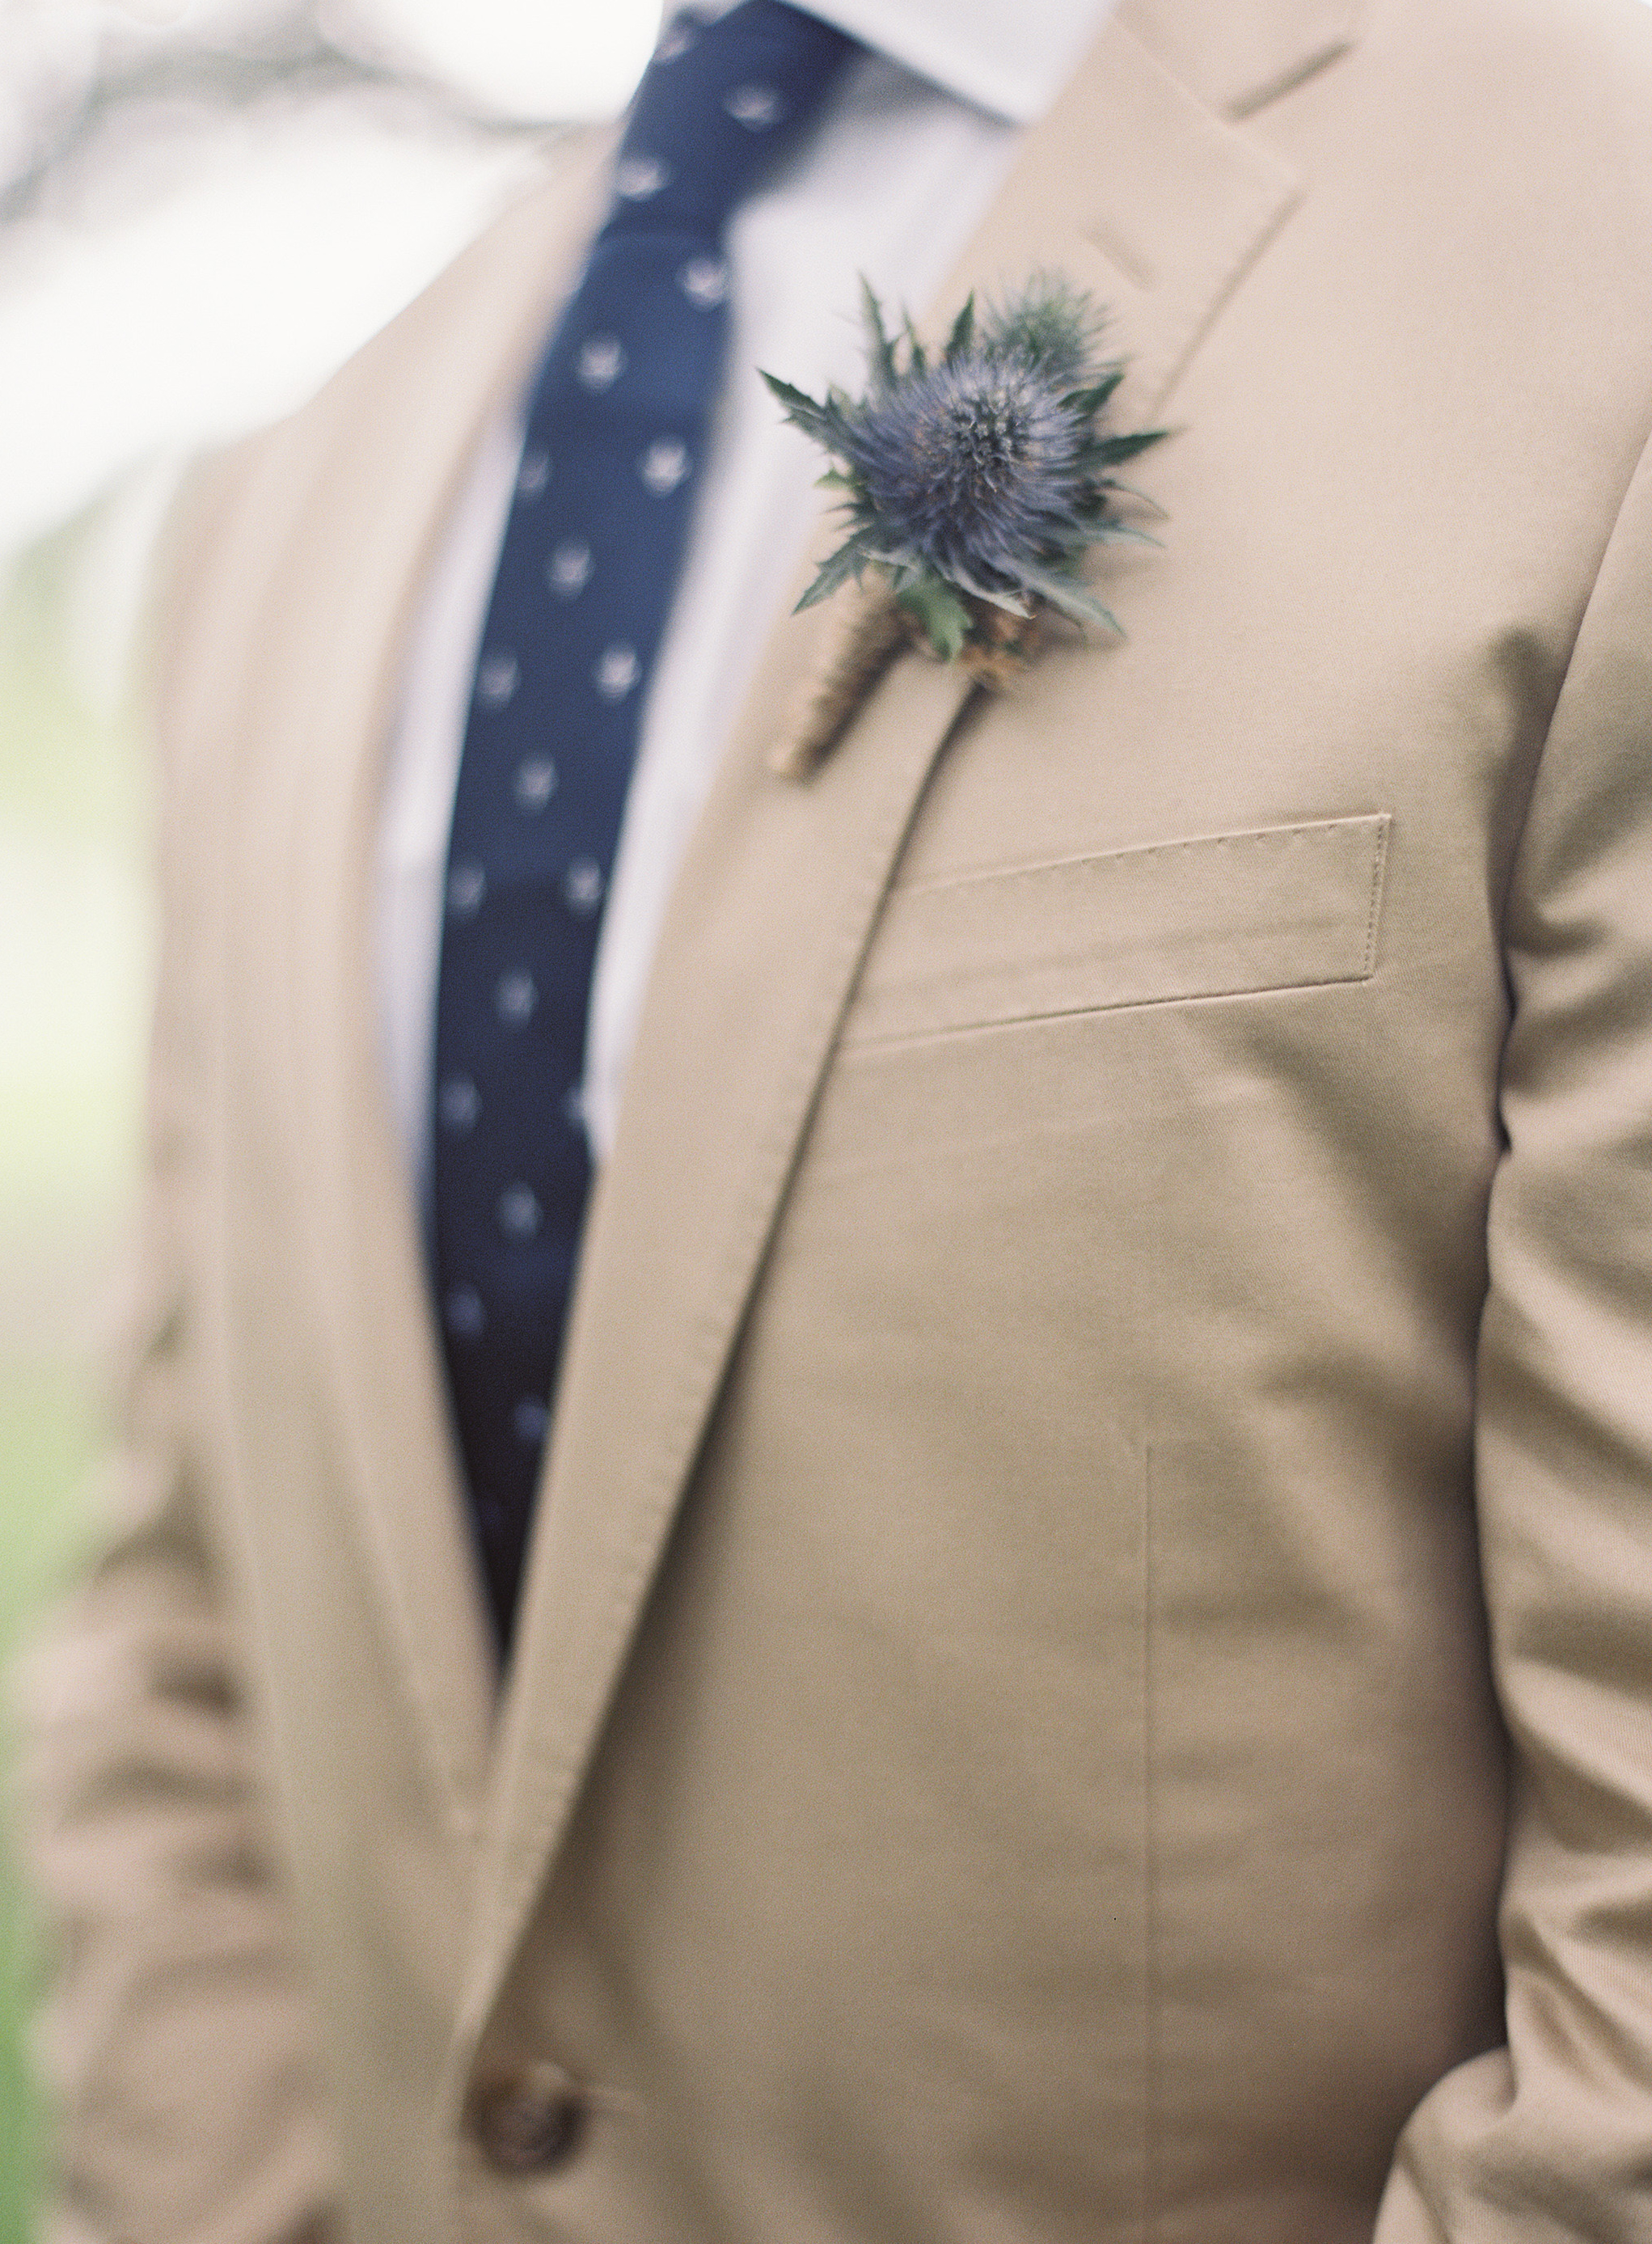 Sapphire Events | Catherine Guidry Photography | Wedding Planning | New Orleans Wedding | Stella Plantation Wedding | Blue and White Wedding | Classic Rainy Day Wedding | Outdoor Wedding | Tent Wedding | Hunter Boots | Blue and White Wedding Details | Blue Thistle Boutonniere